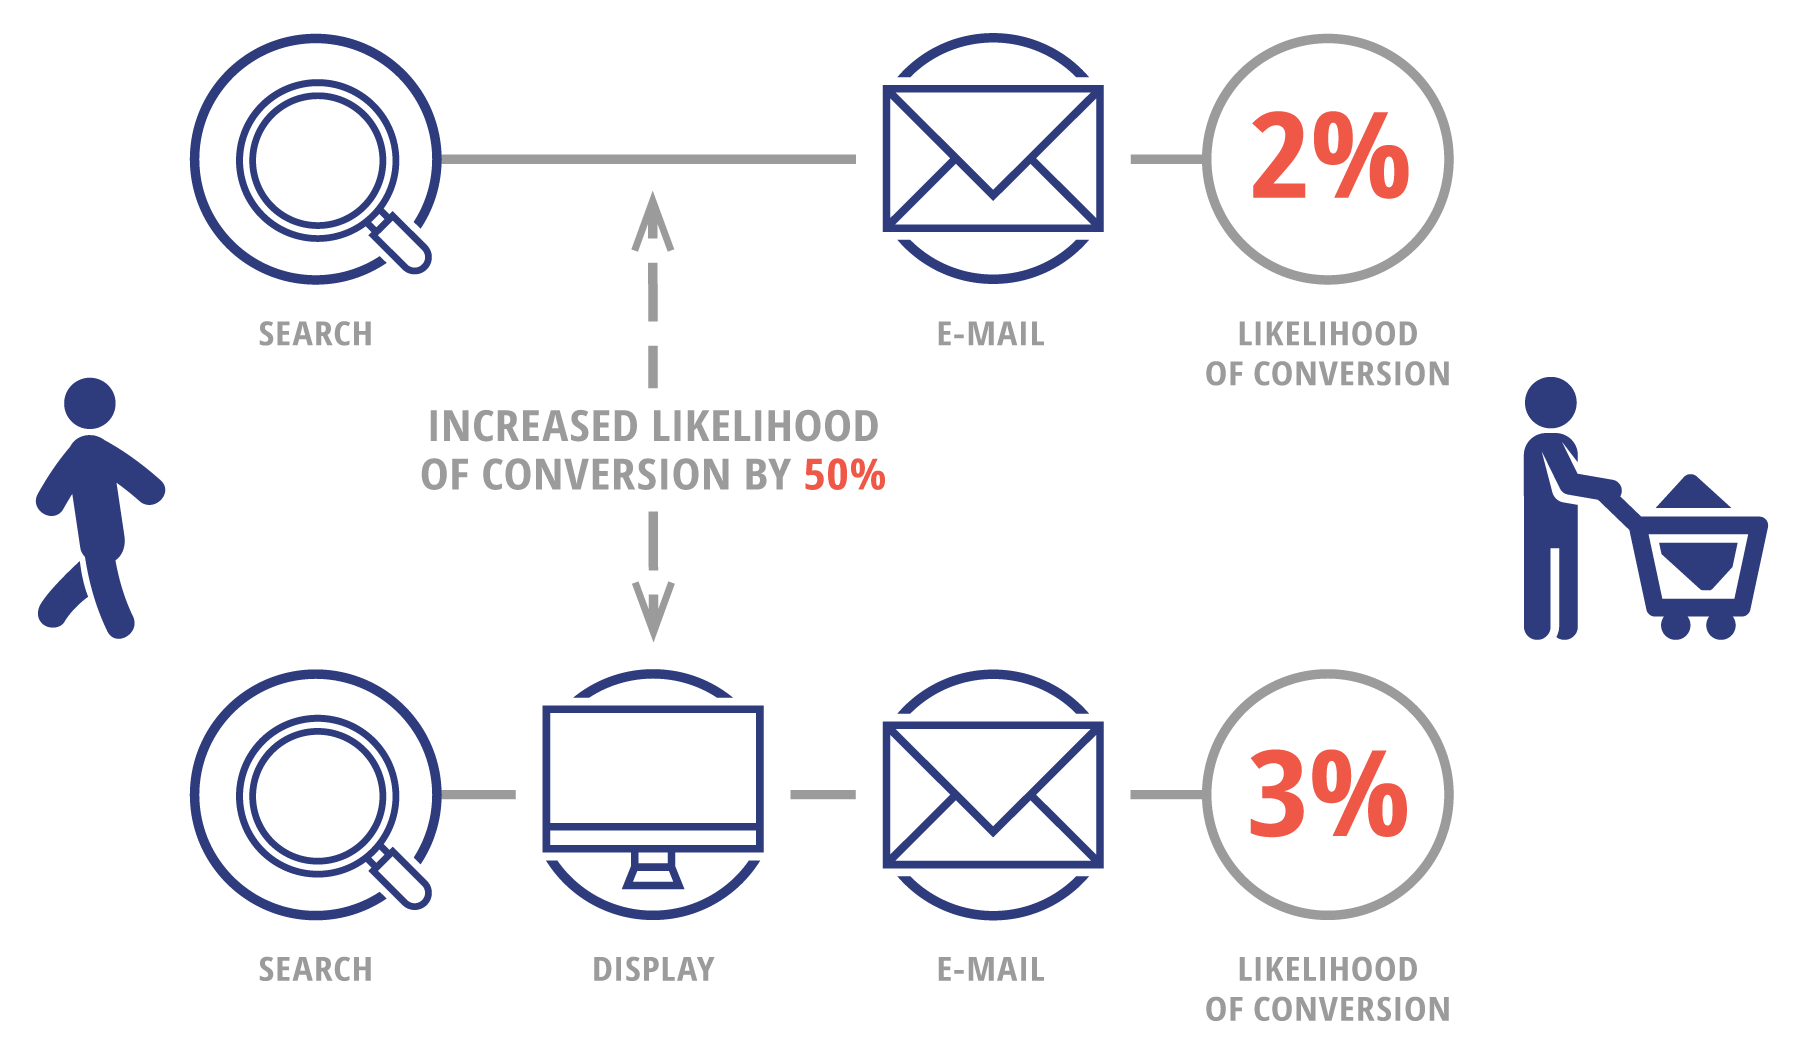 Combination of search and e-mail has 2 percent probability of conversion. If there is also display on the path, the probability increases to 3 percent. Display increases the probability of conversion by 50 percent.